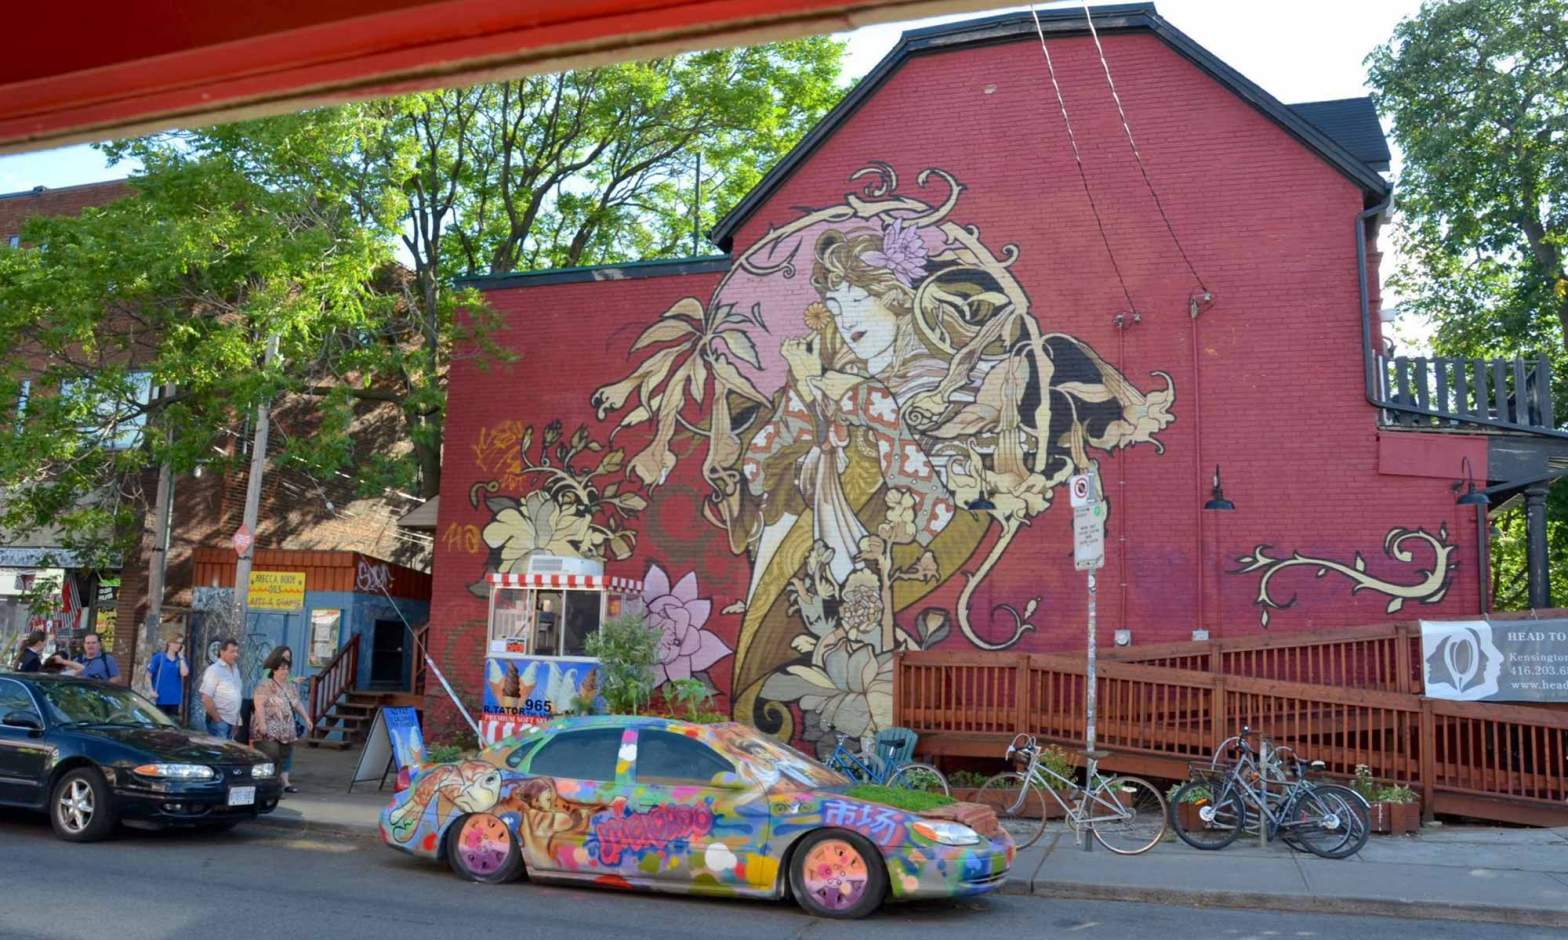 A mural of a woman is painted on a red building in the Kensington district of Toronto.